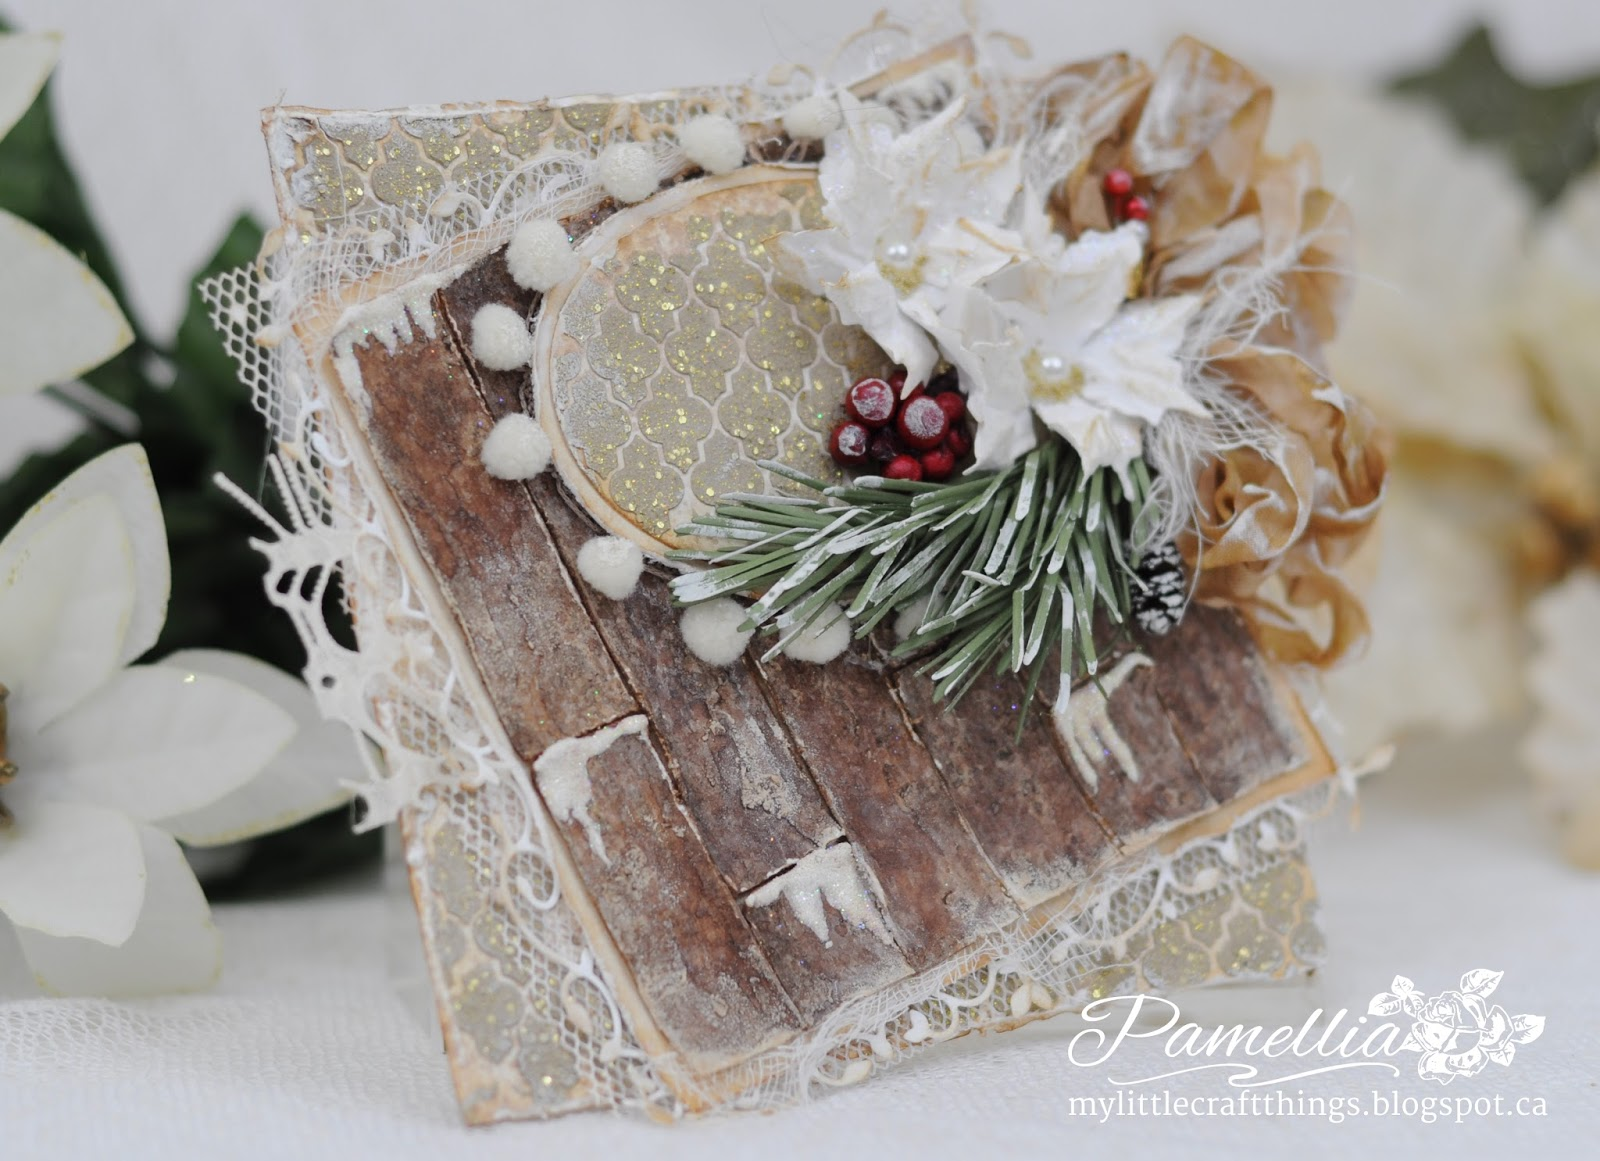 My Little Craft Things: Merry Christmas to a Dear Friend